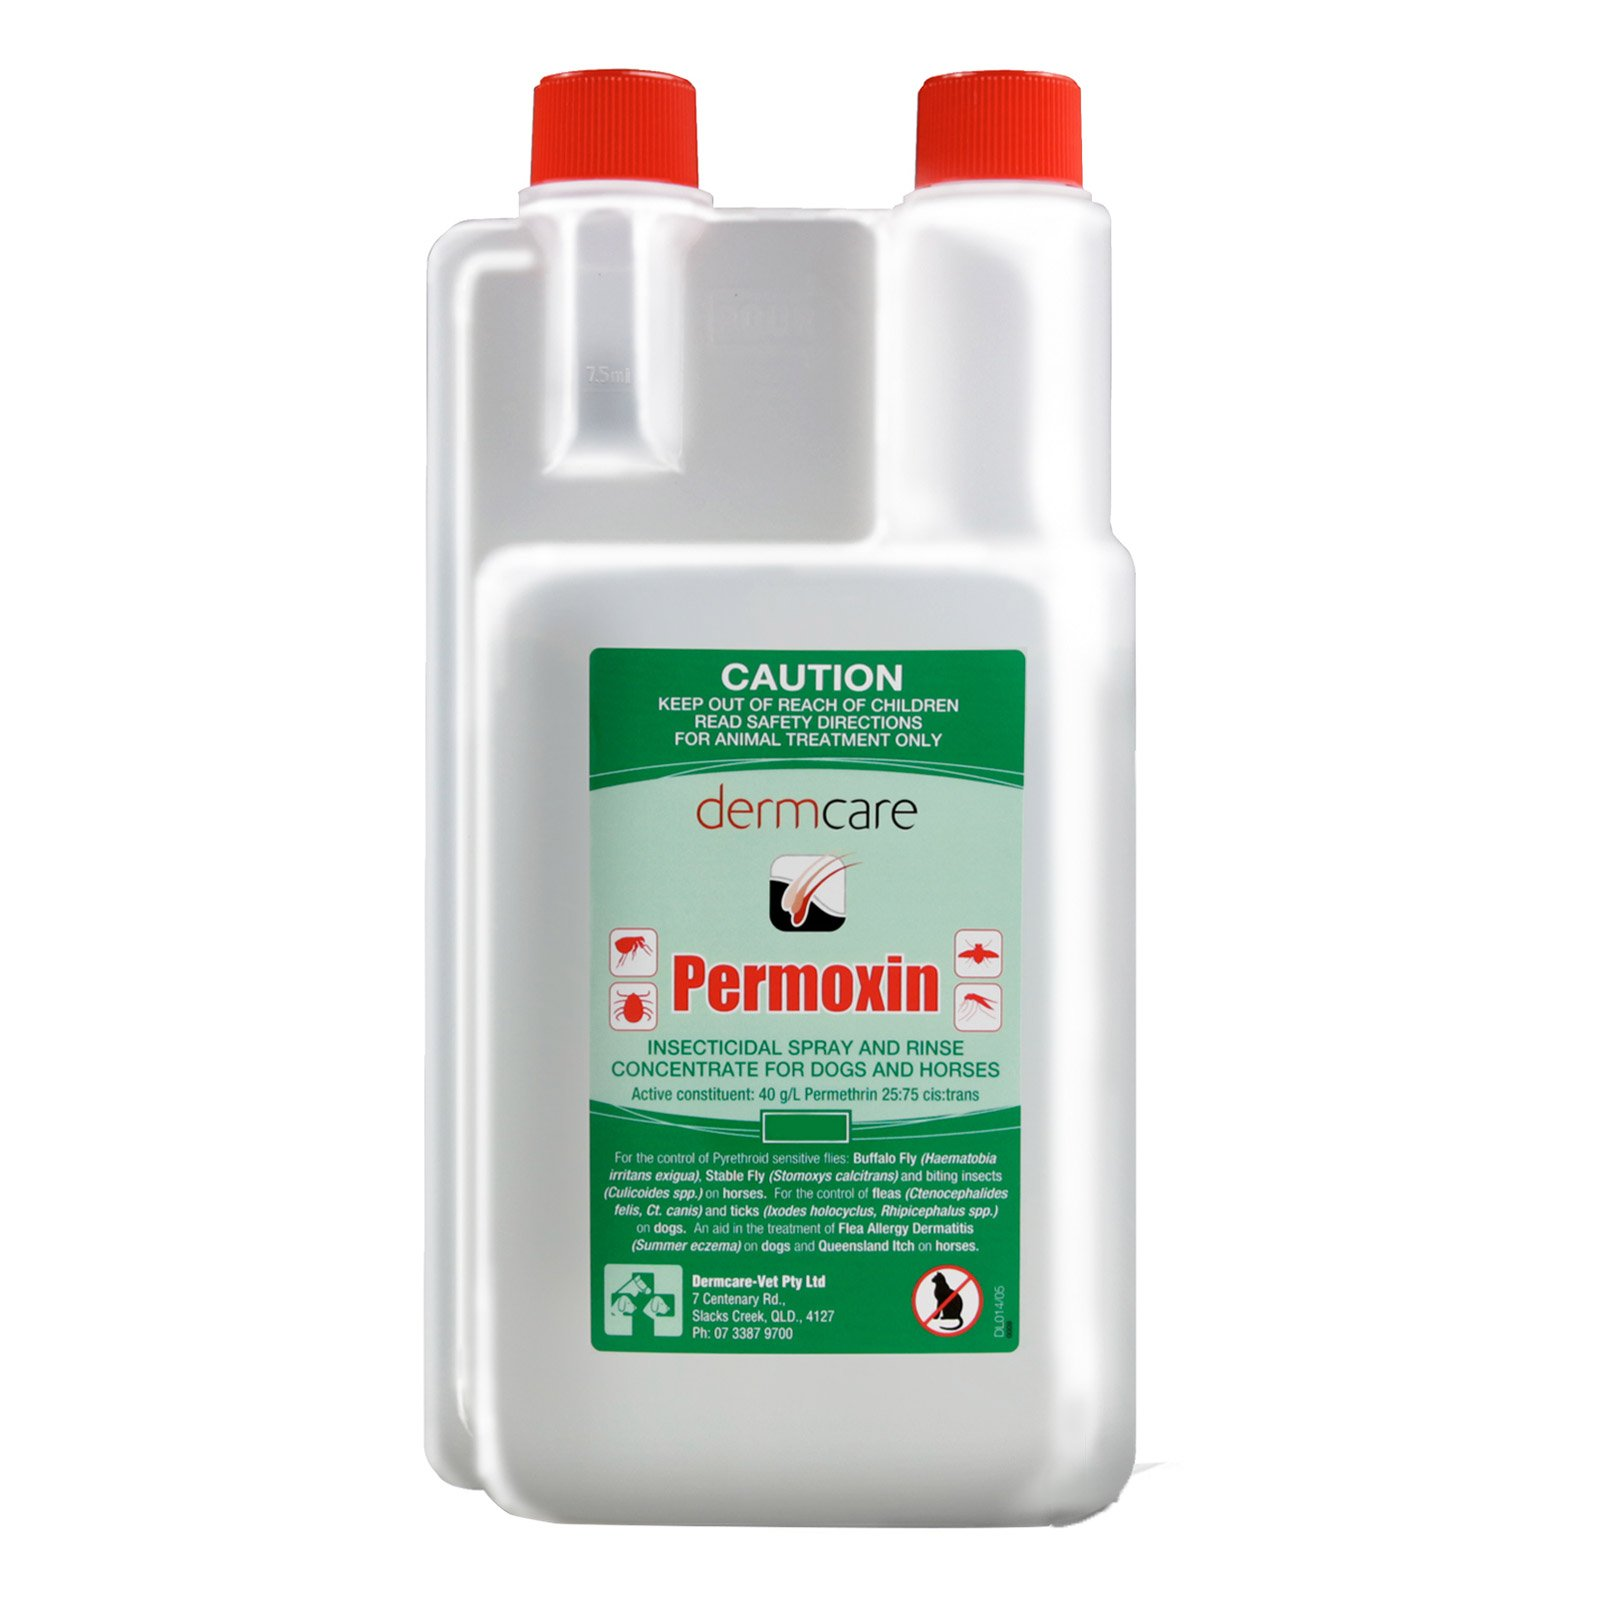 Permoxin Insecticidal Spray And Rinse For Dogs